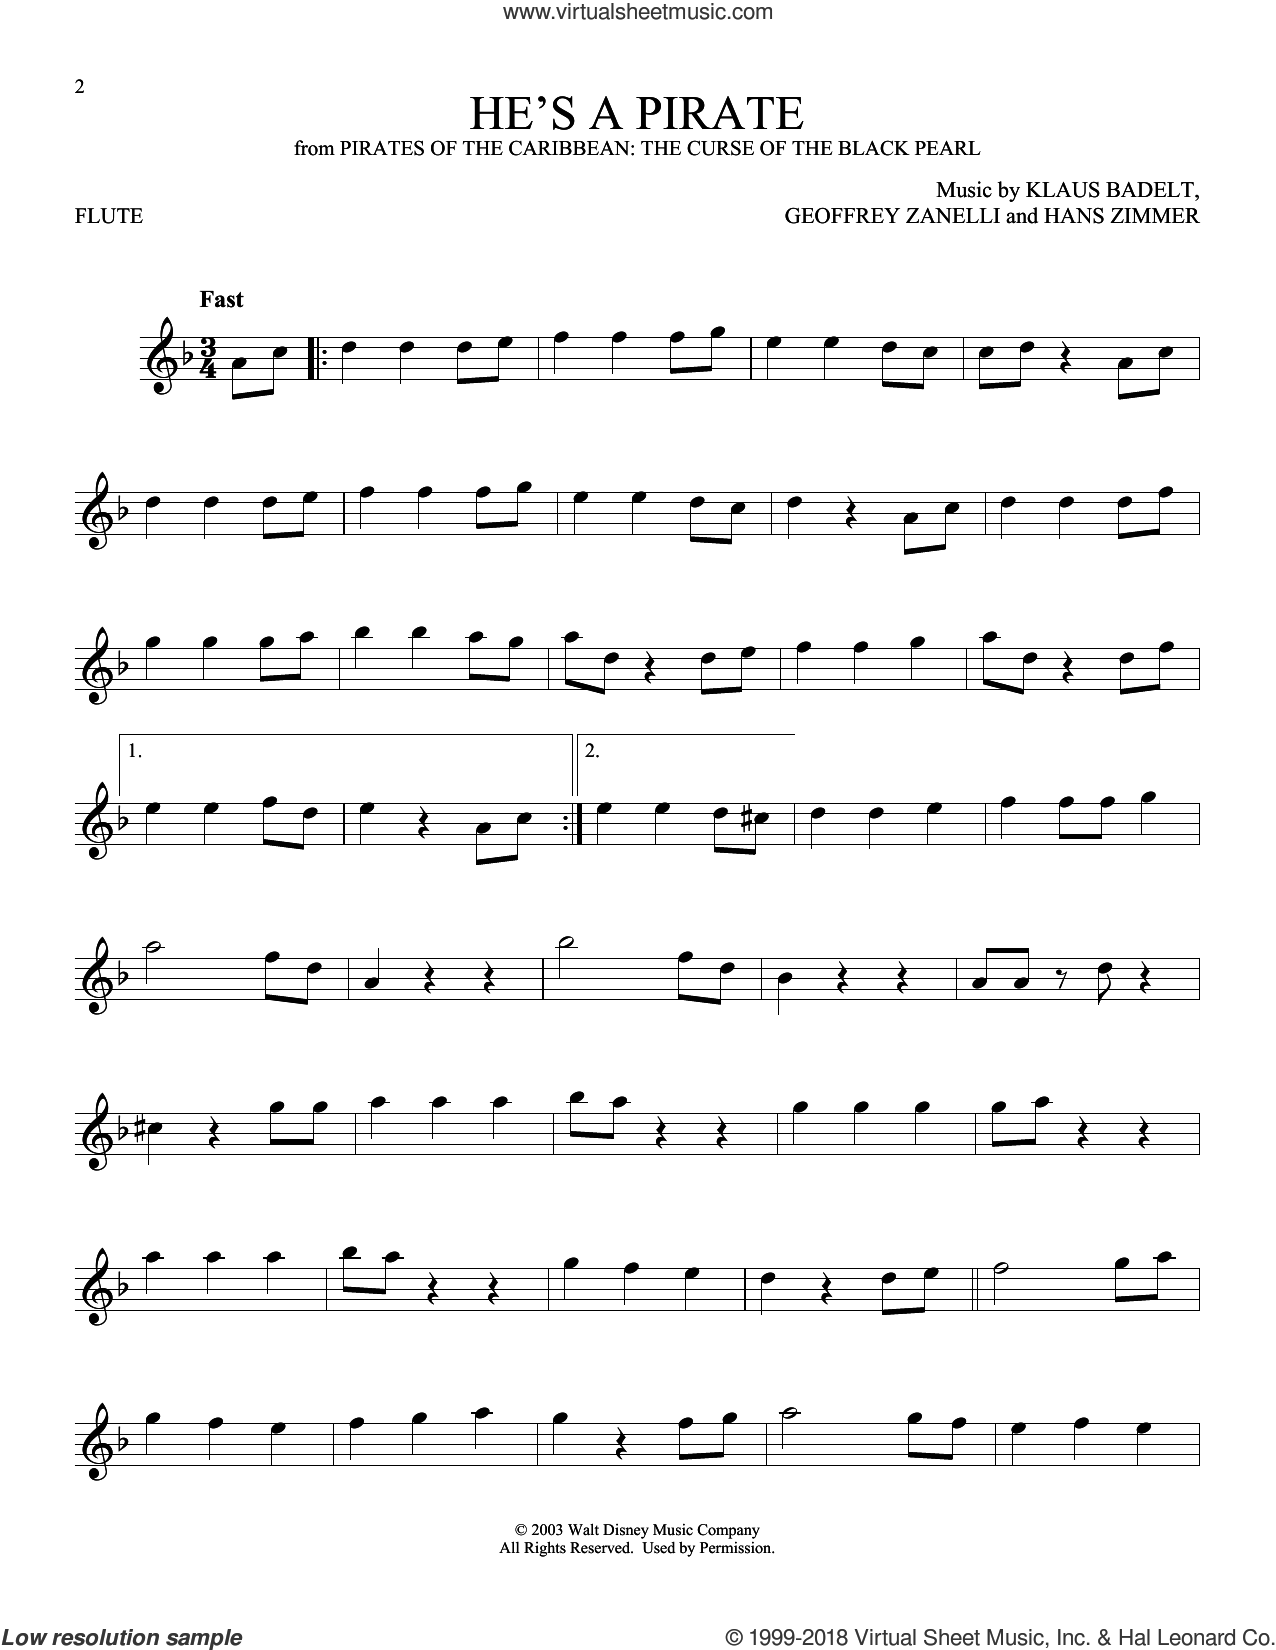 He's A Pirate (from Pirates Of The Caribbean: The Curse of the Black Pearl) sheet music for flute solo by Hans Zimmer, Geoffrey Zanelli and Klaus Badelt, intermediate skill level